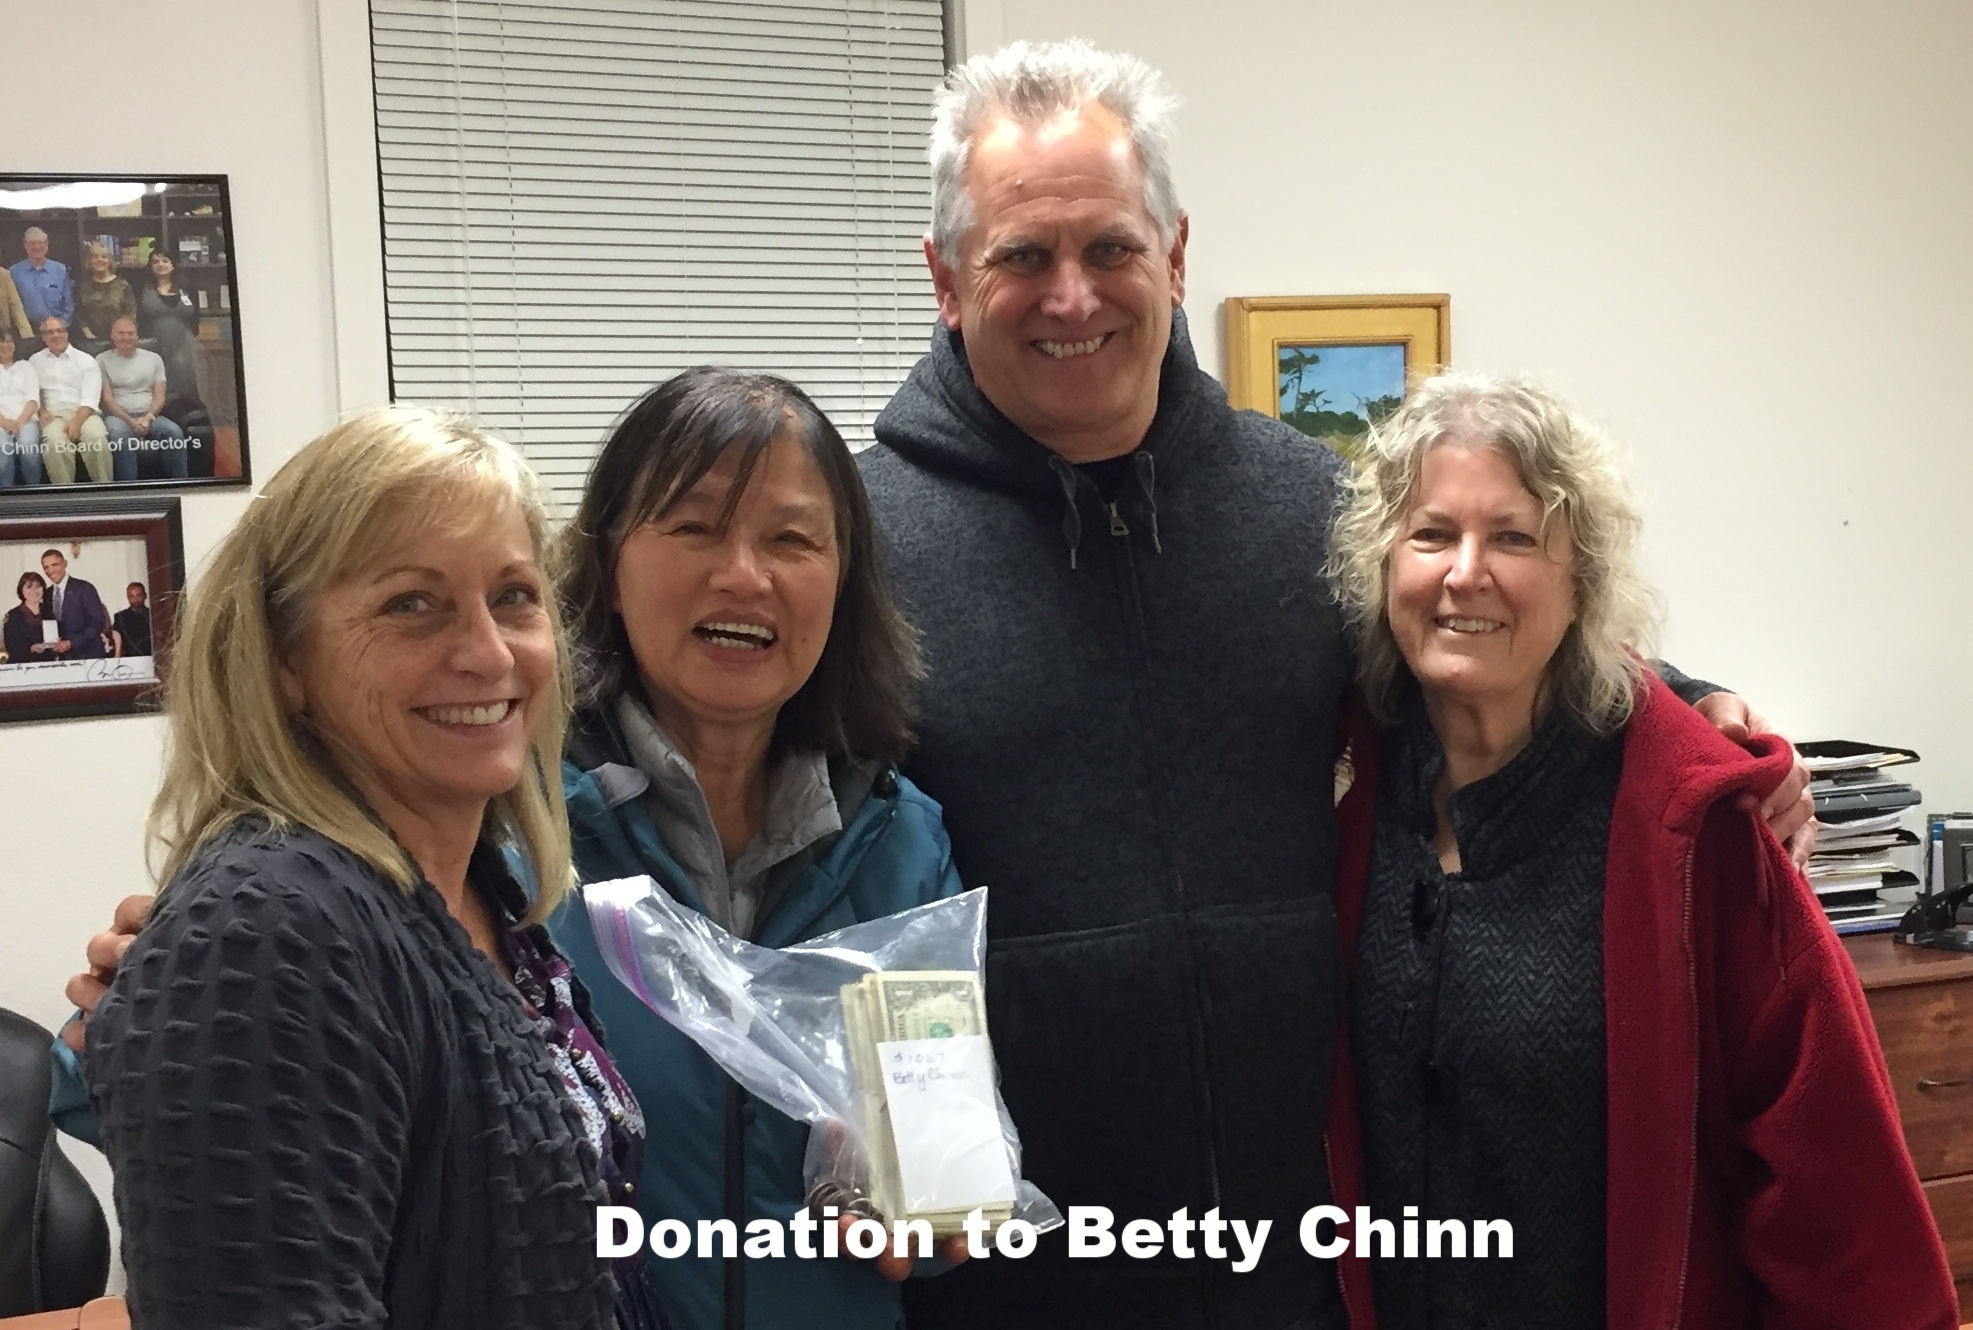 Betty Chinn AIGC donation.jpg